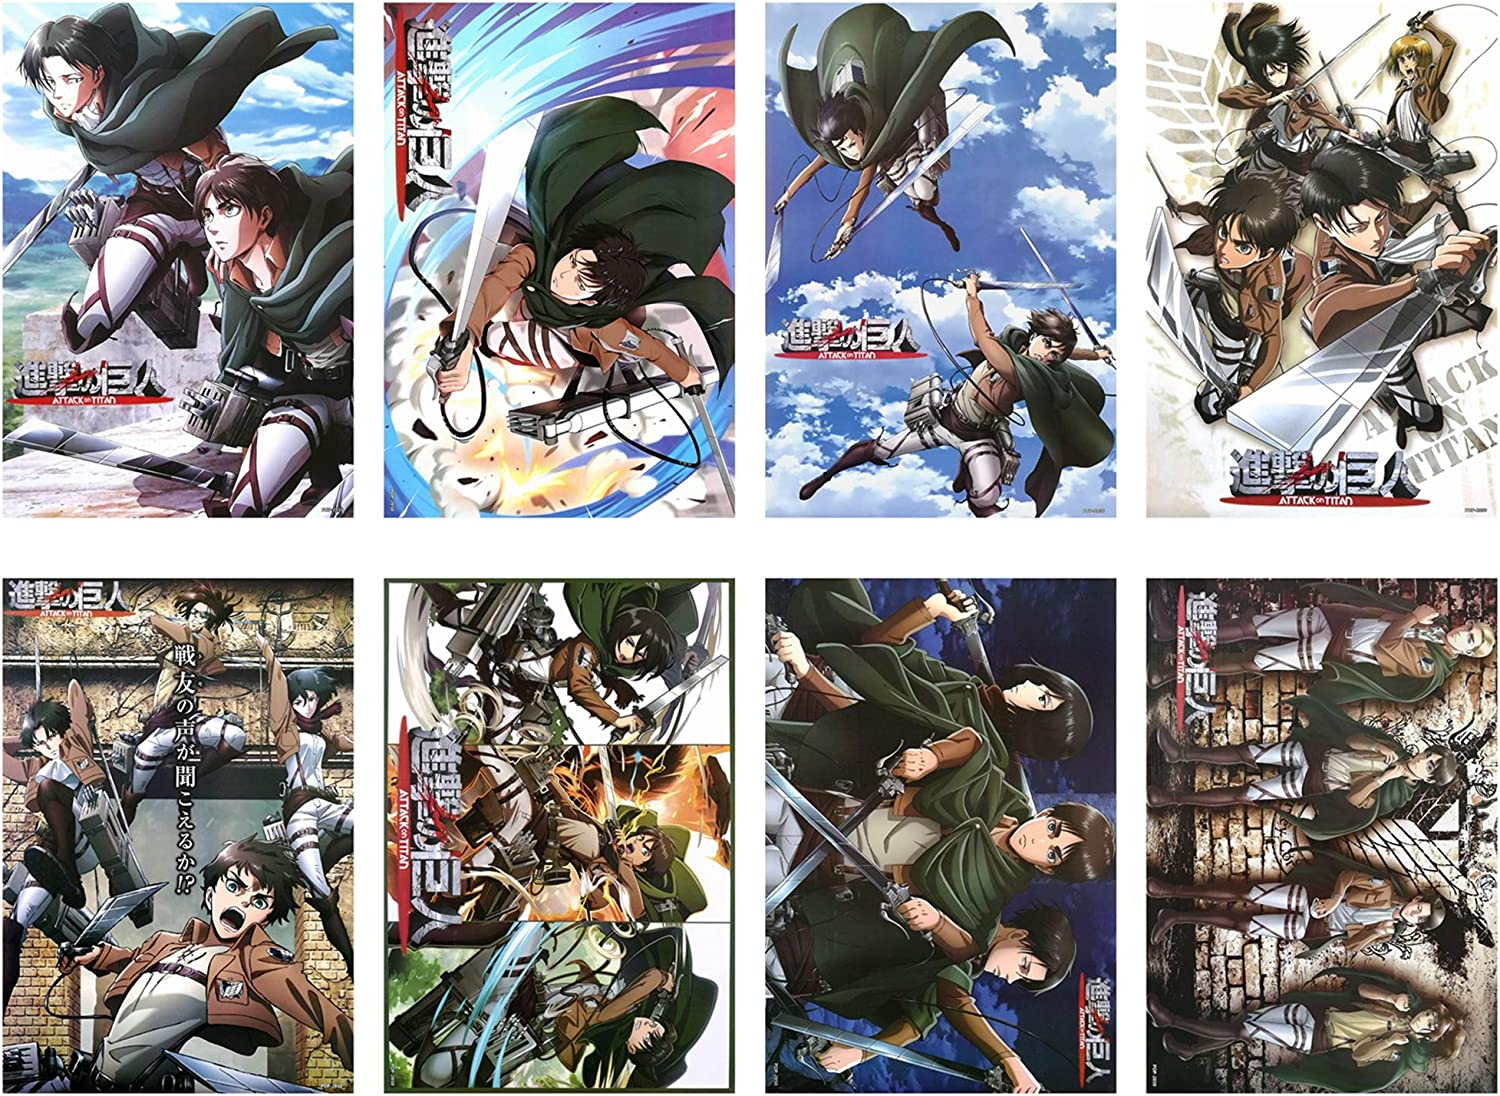 Attack On Titan Posters Japanese Anime Poster Art Prints for Home Wall Decor, Set of 8 PCS, 11.5in x16.5in